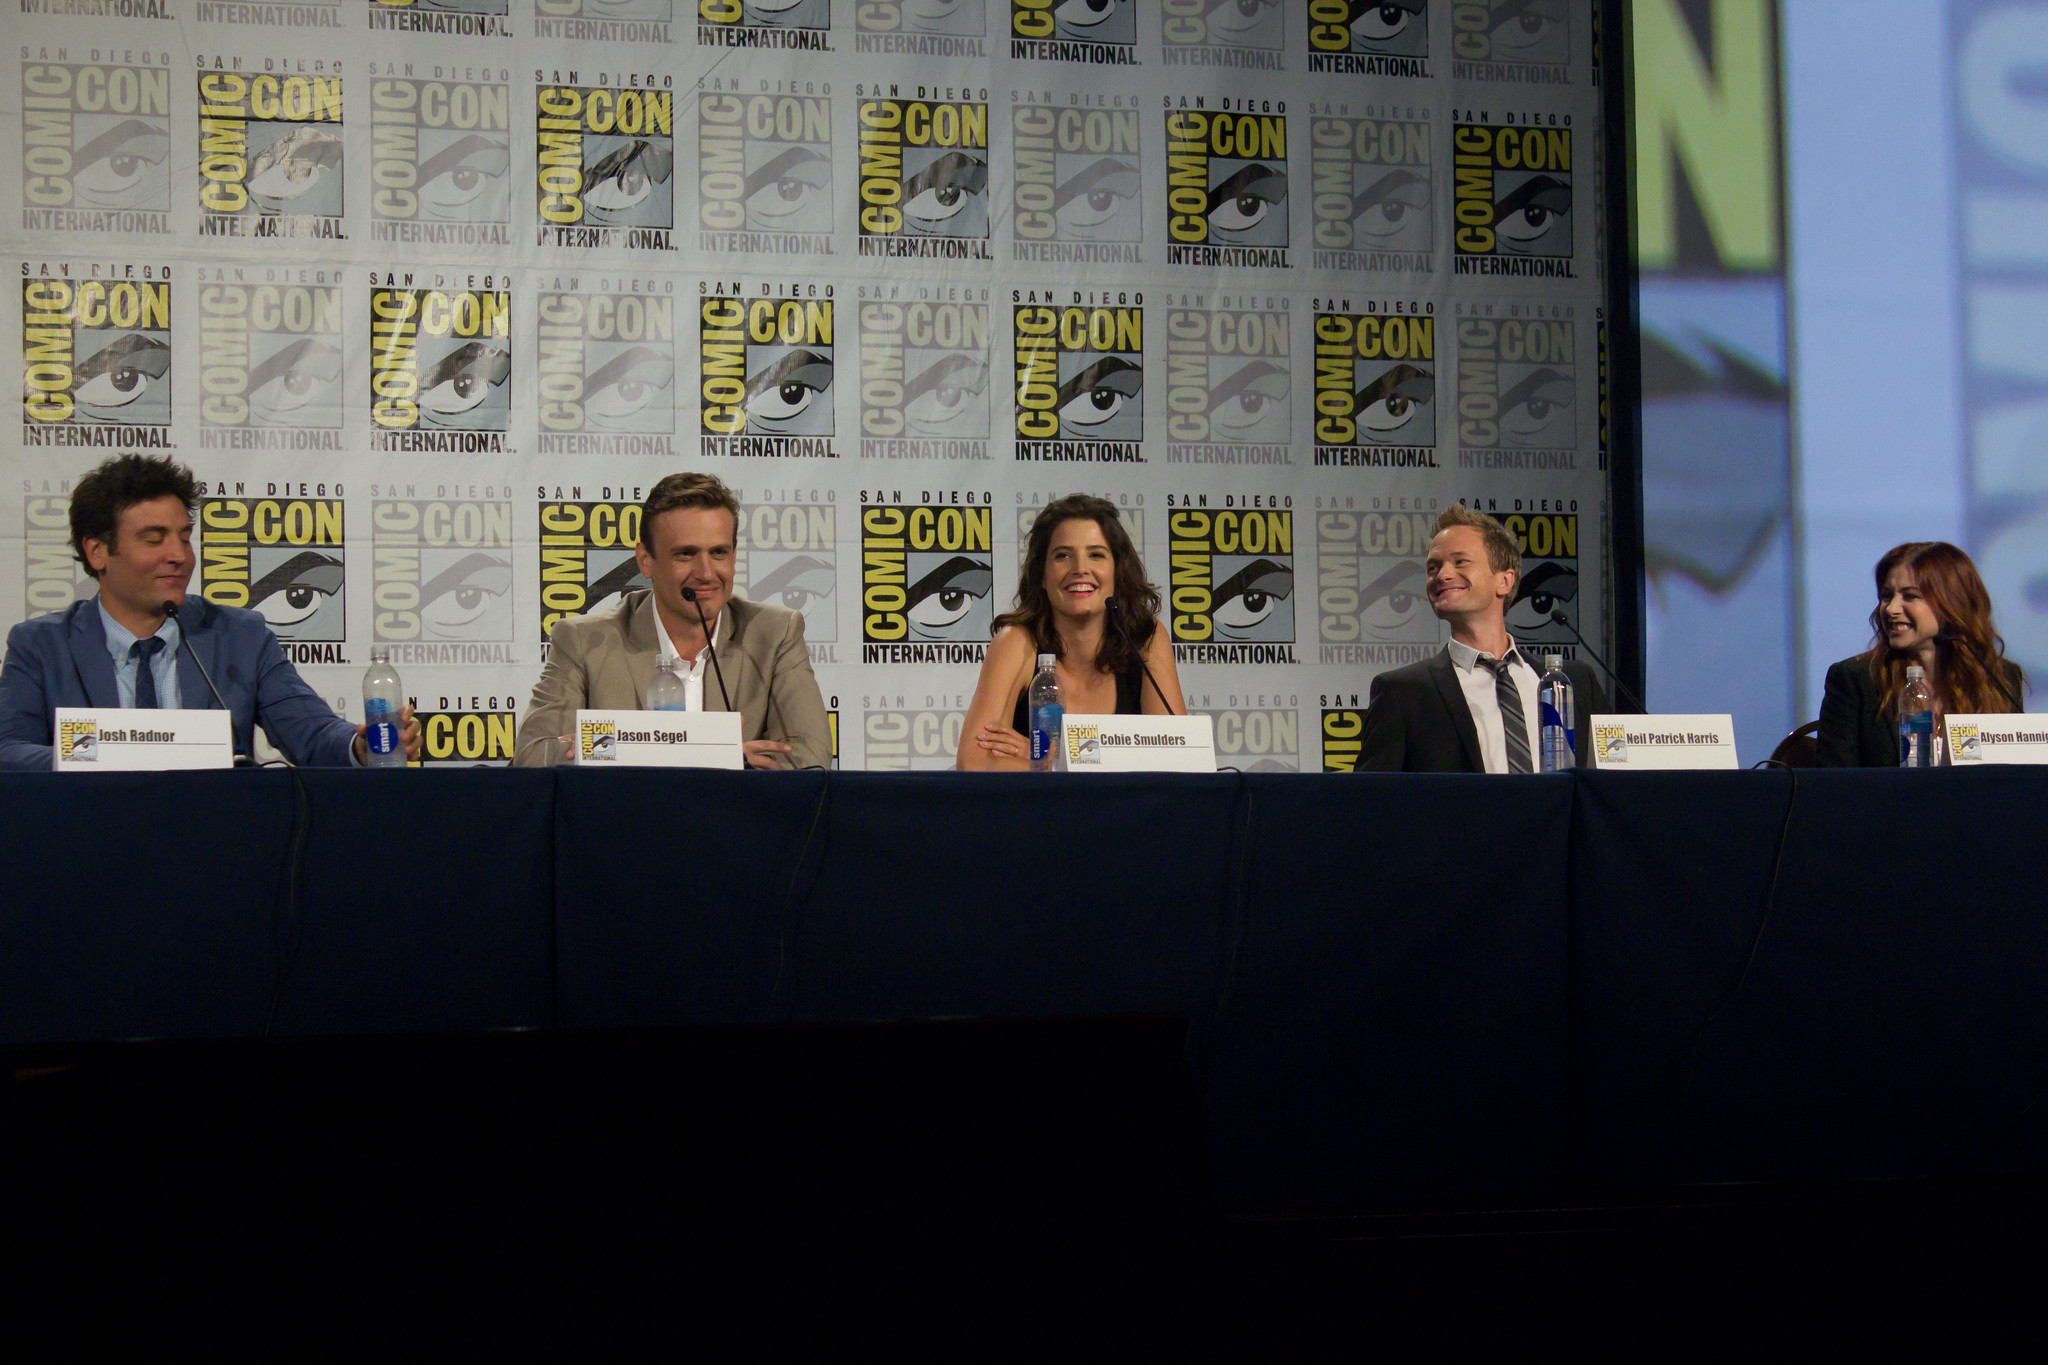 The cast of the TV show How I Met Your Mother leading a panel at Comic-Con